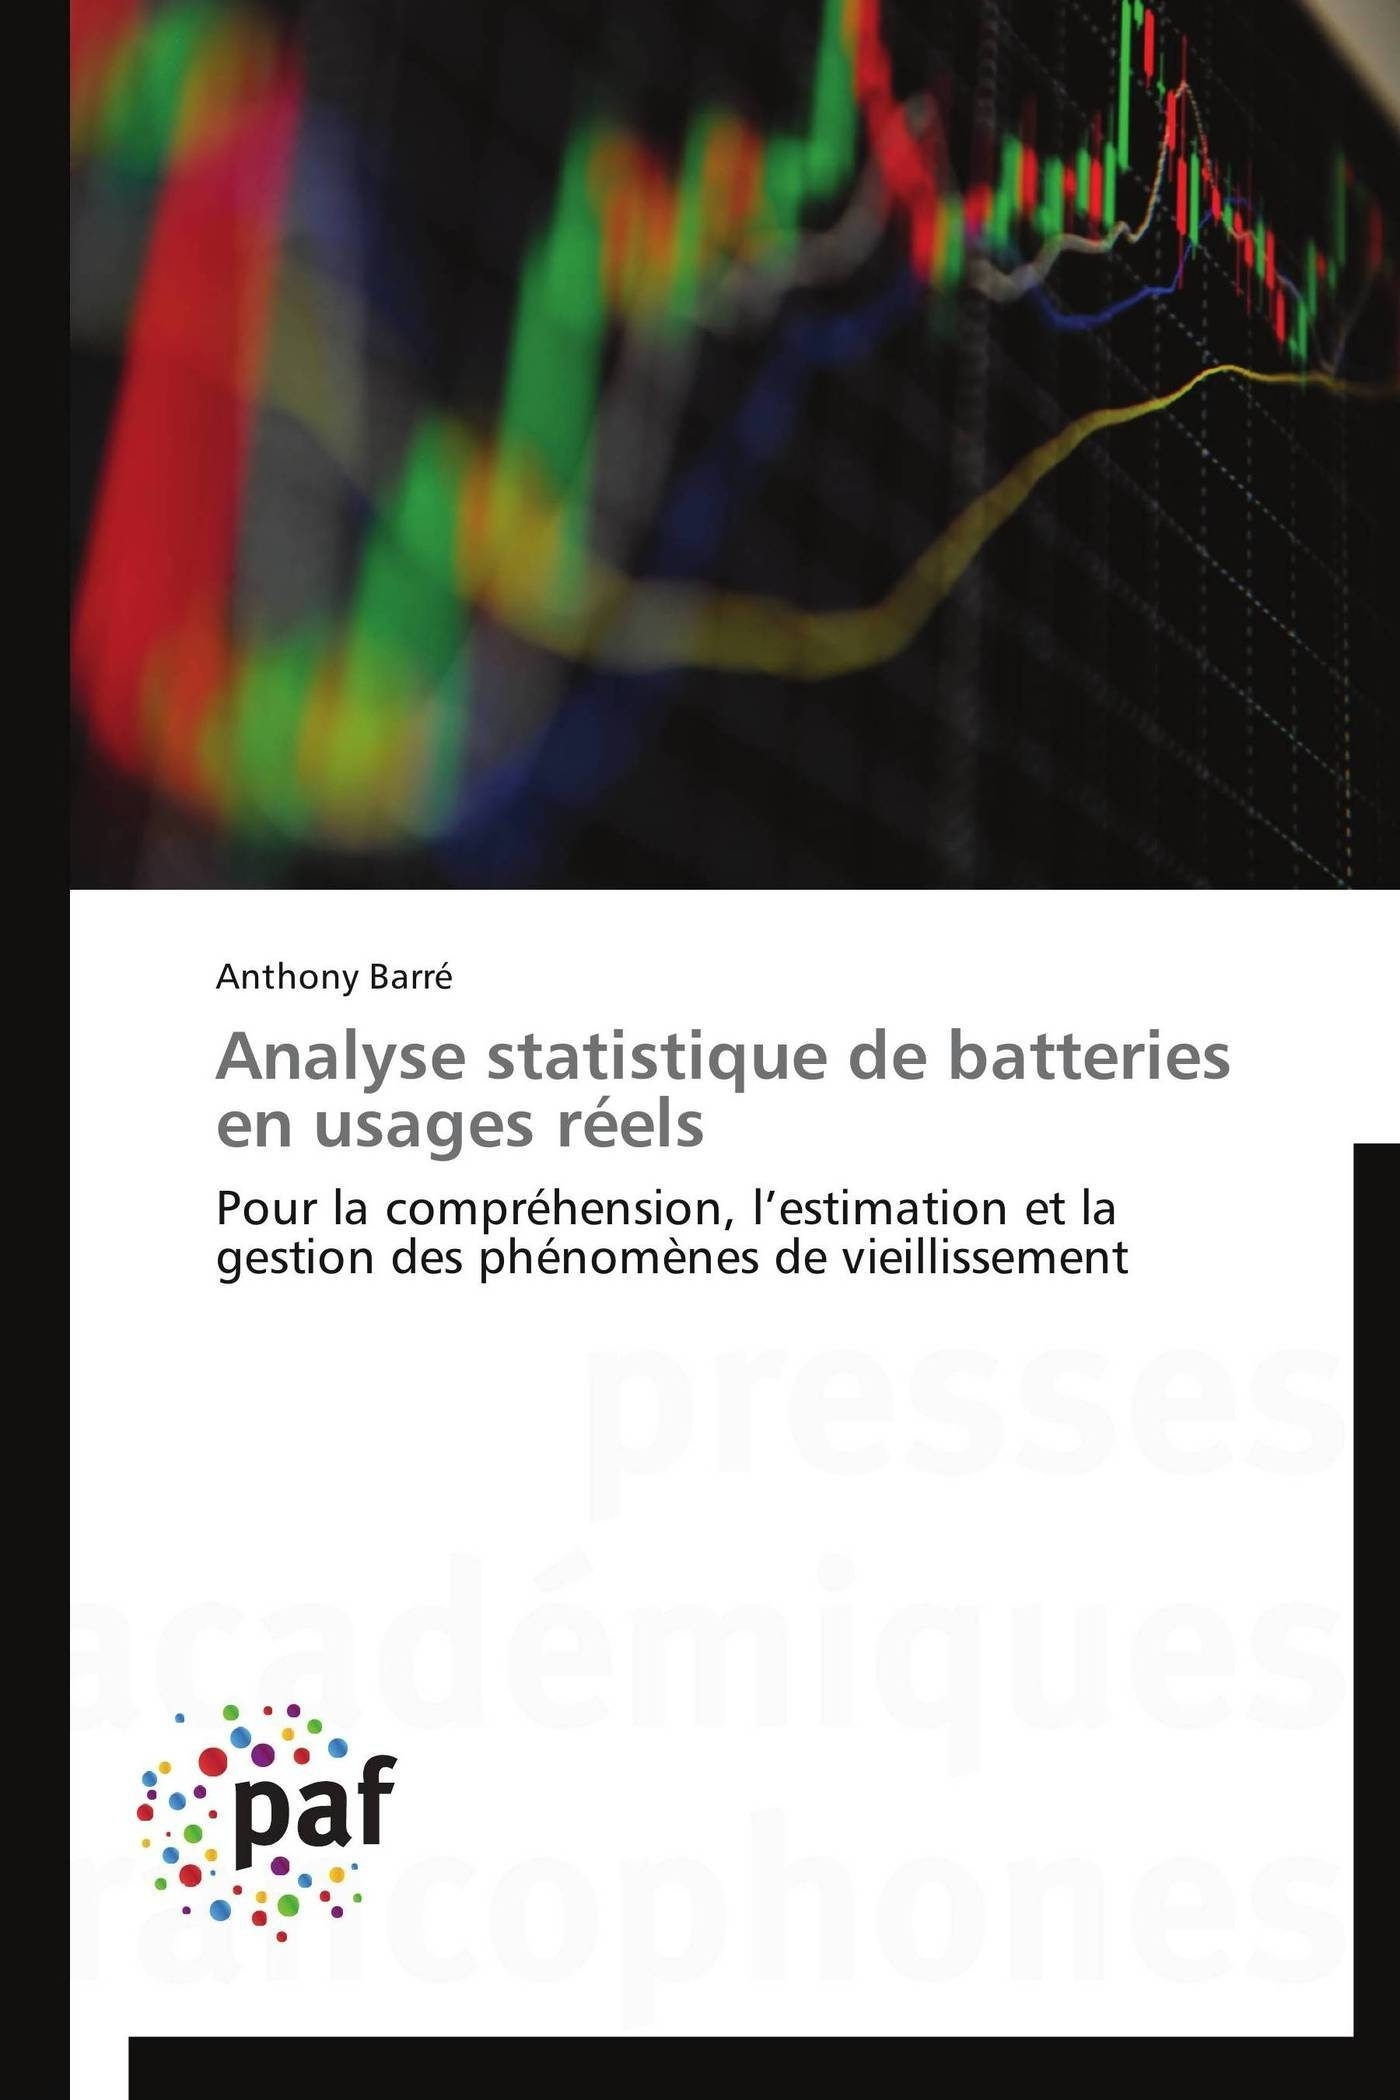 ANALYSE STATISTIQUE DE BATTERIES EN USAGES REELS